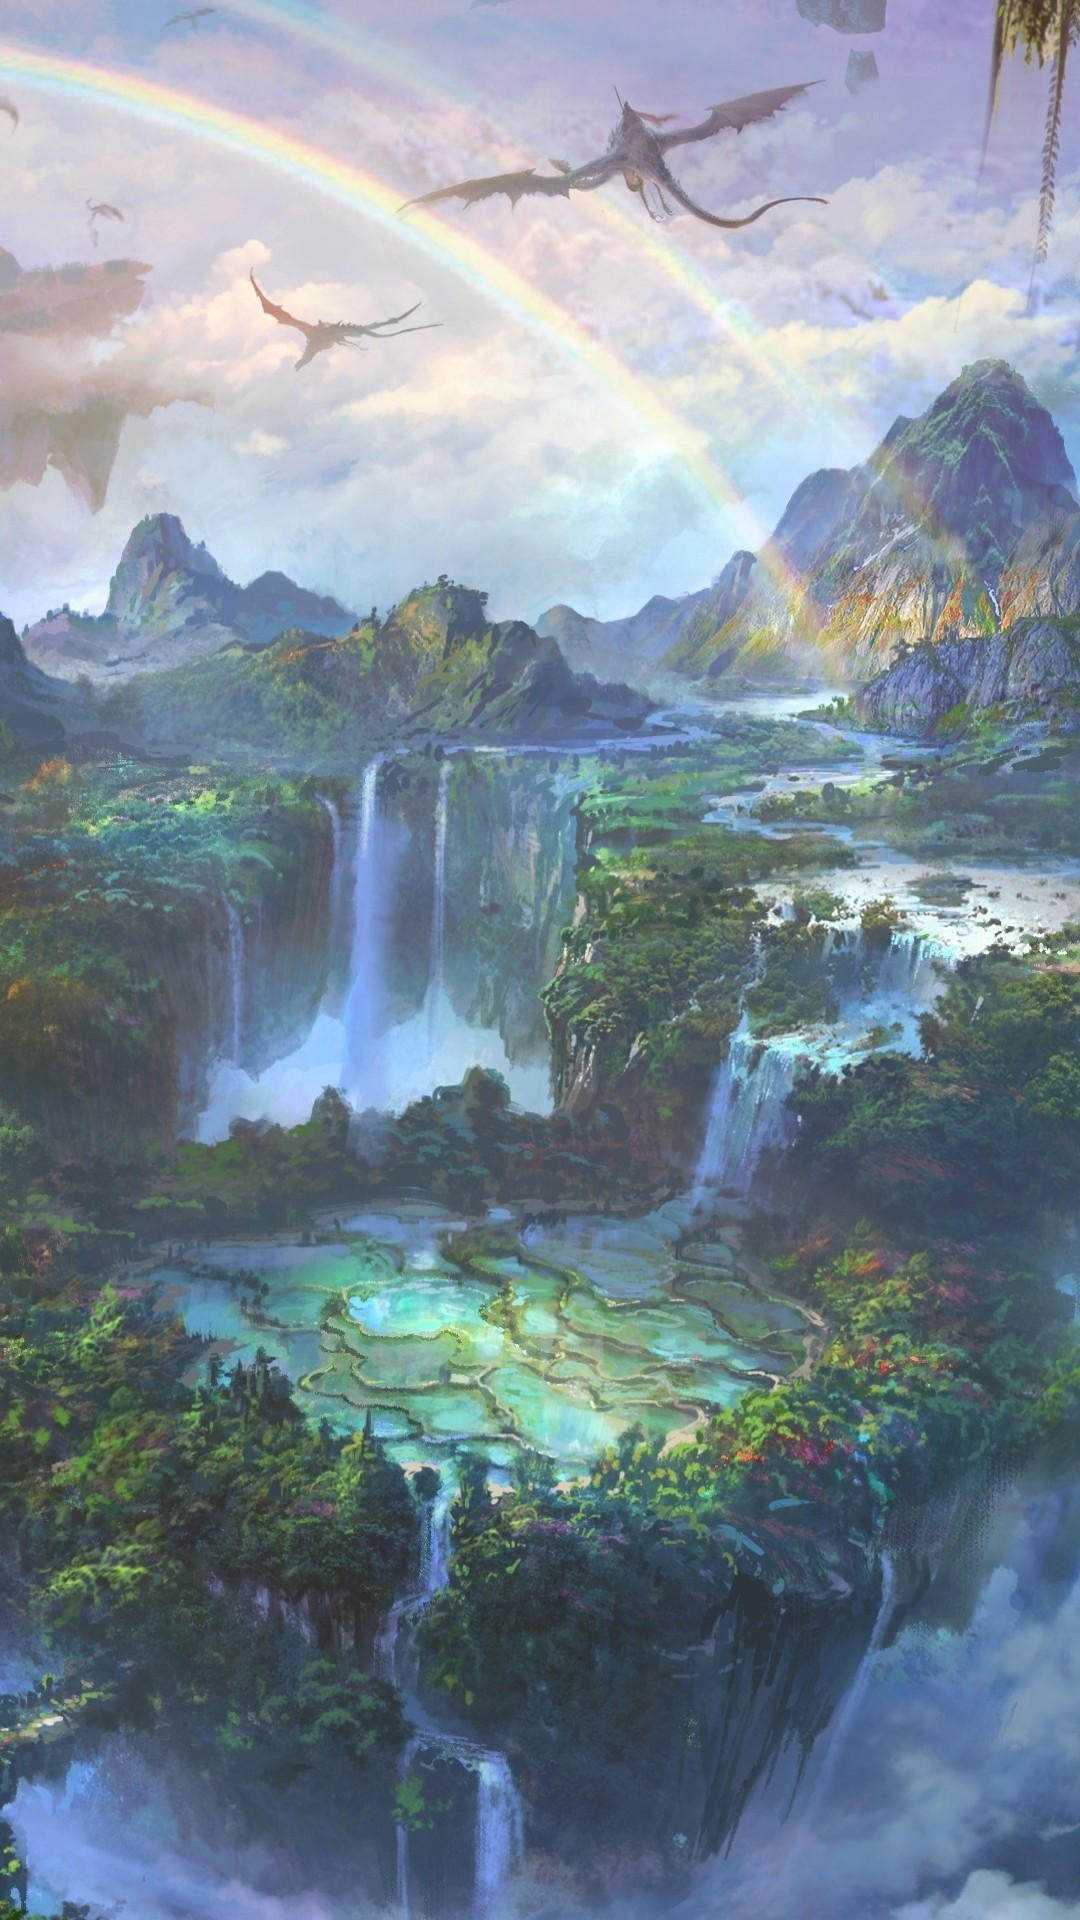 Fantasy Landscape Wallpaper (76+ Images